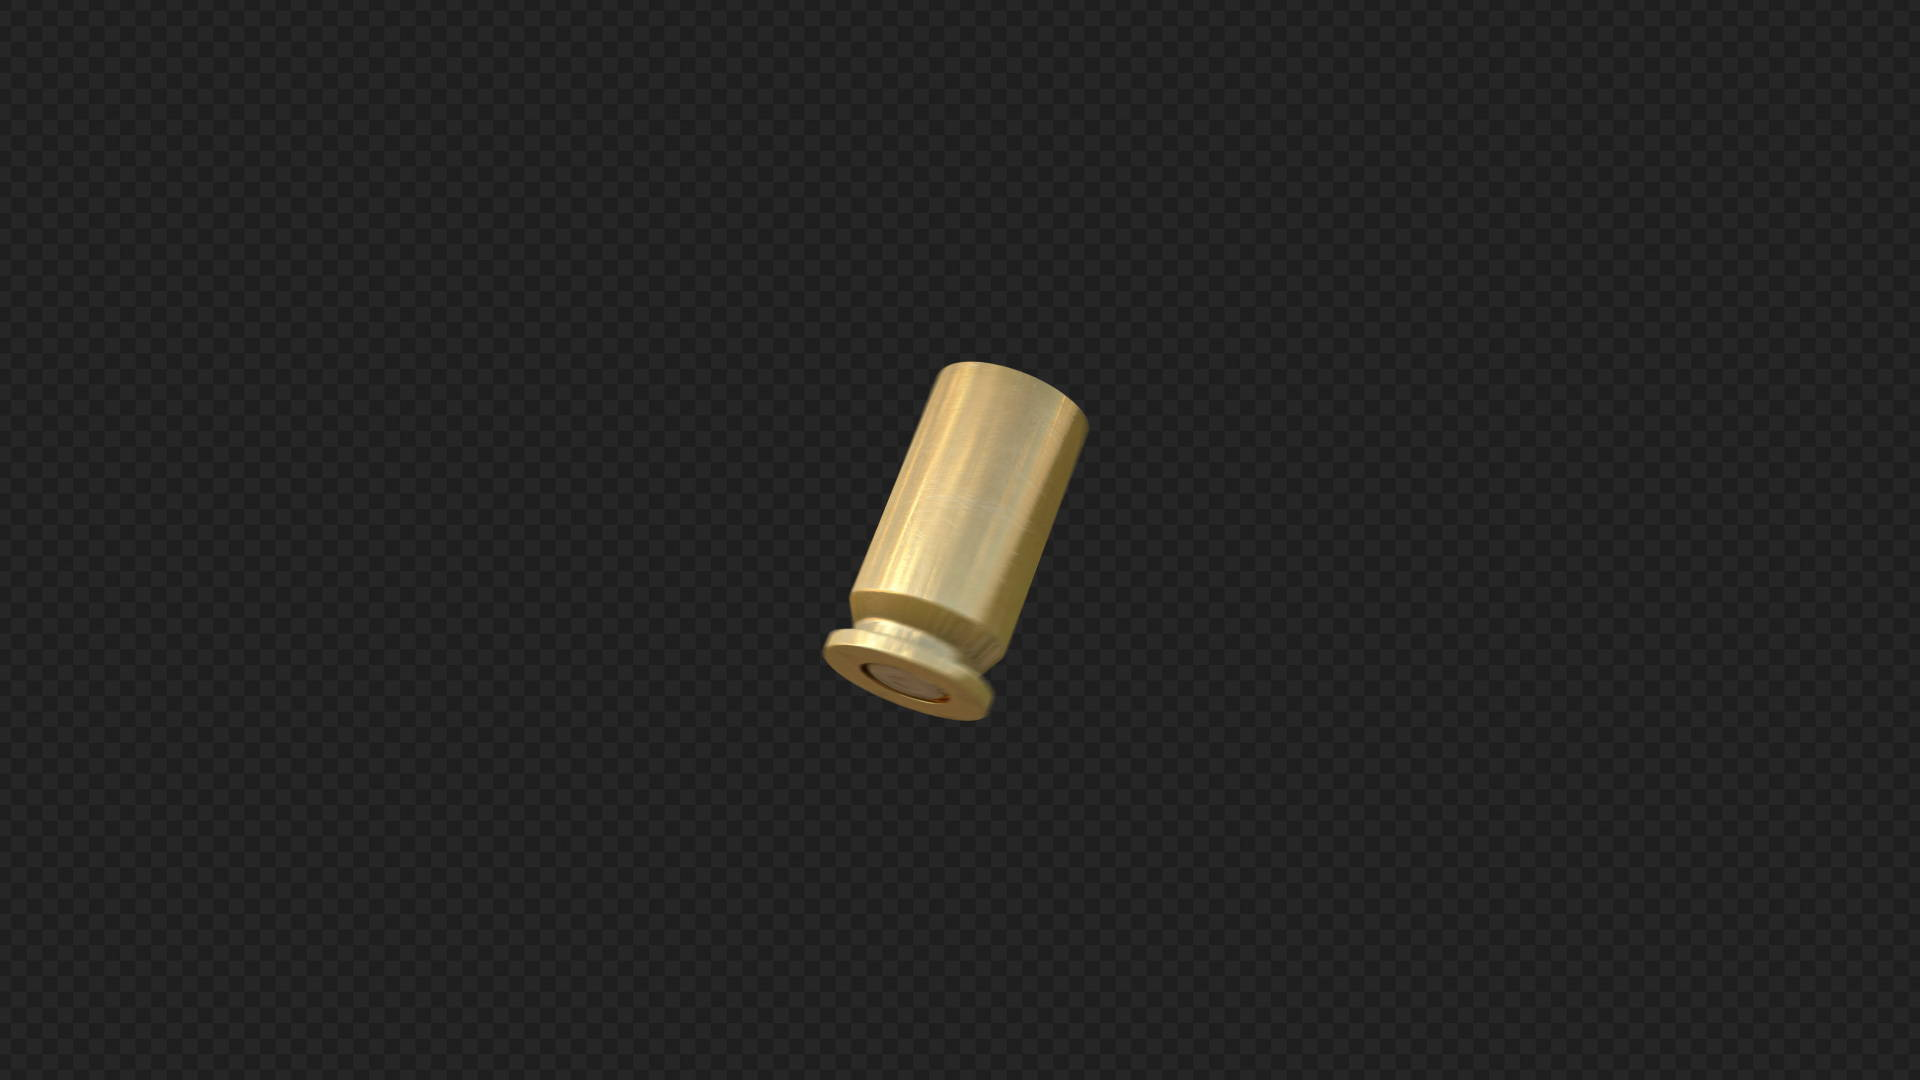 Free Bullet Shells for Visual Effects